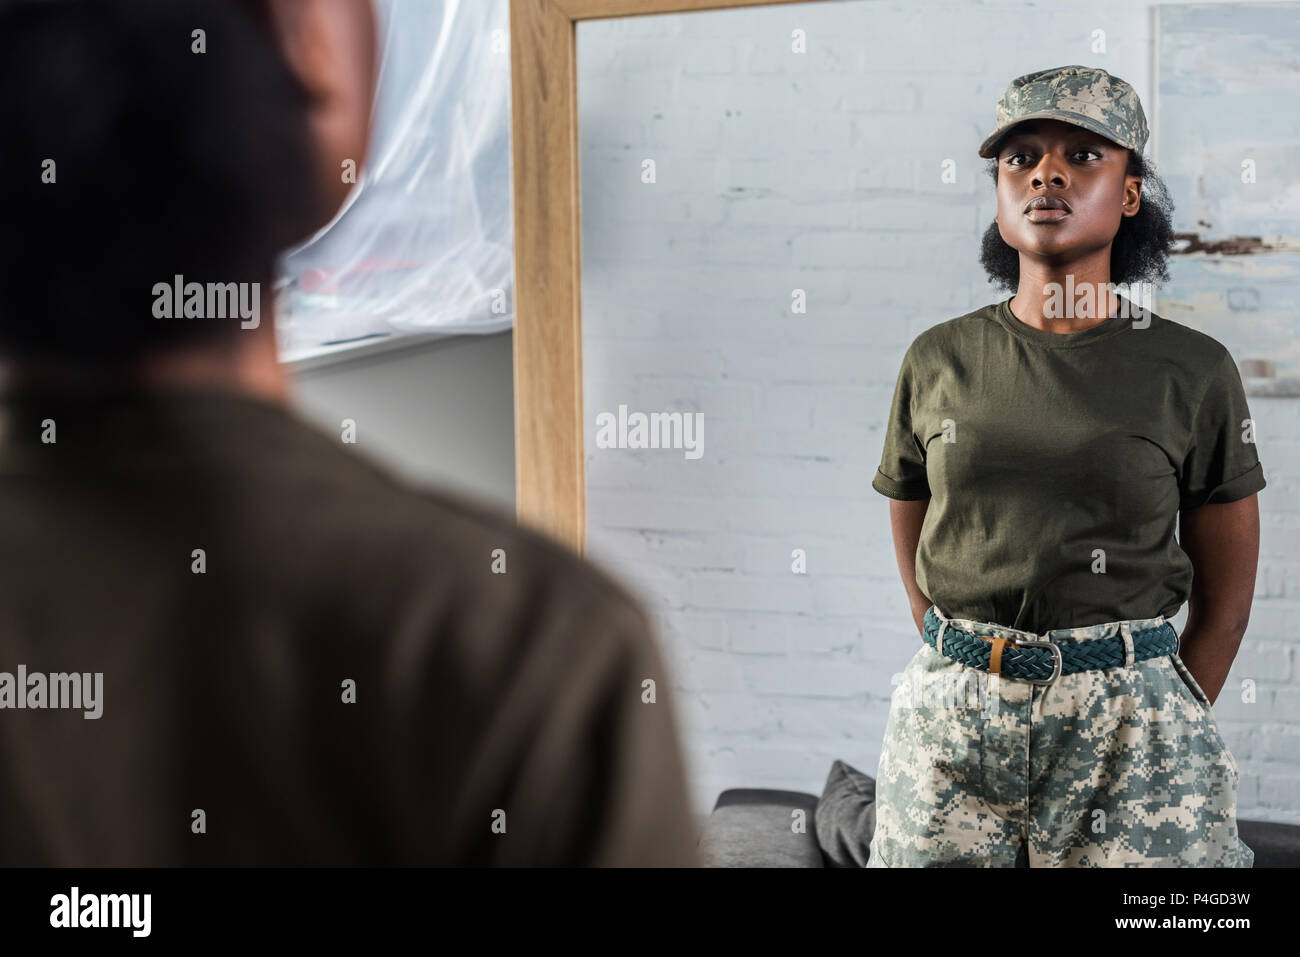 Confident african american woman in camouflage clothes posing by the mirror - Stock Image